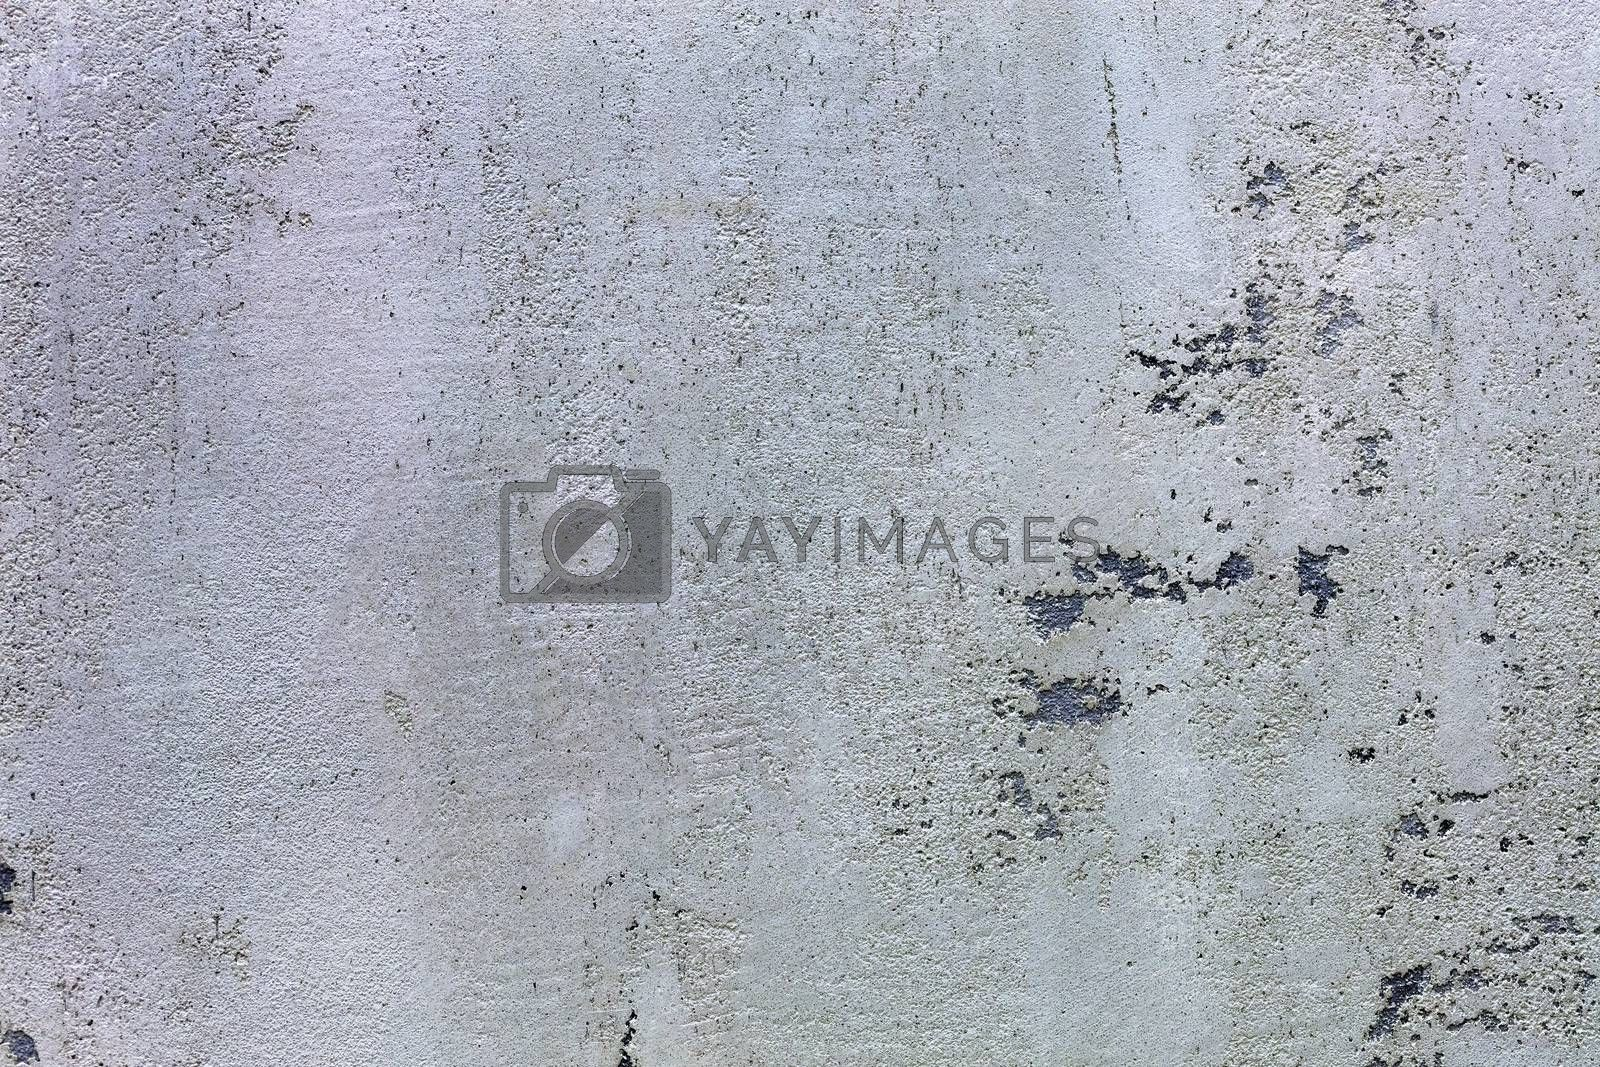 Beautiful texture of the pattern of grind gray concrete with black impregnations on the wall